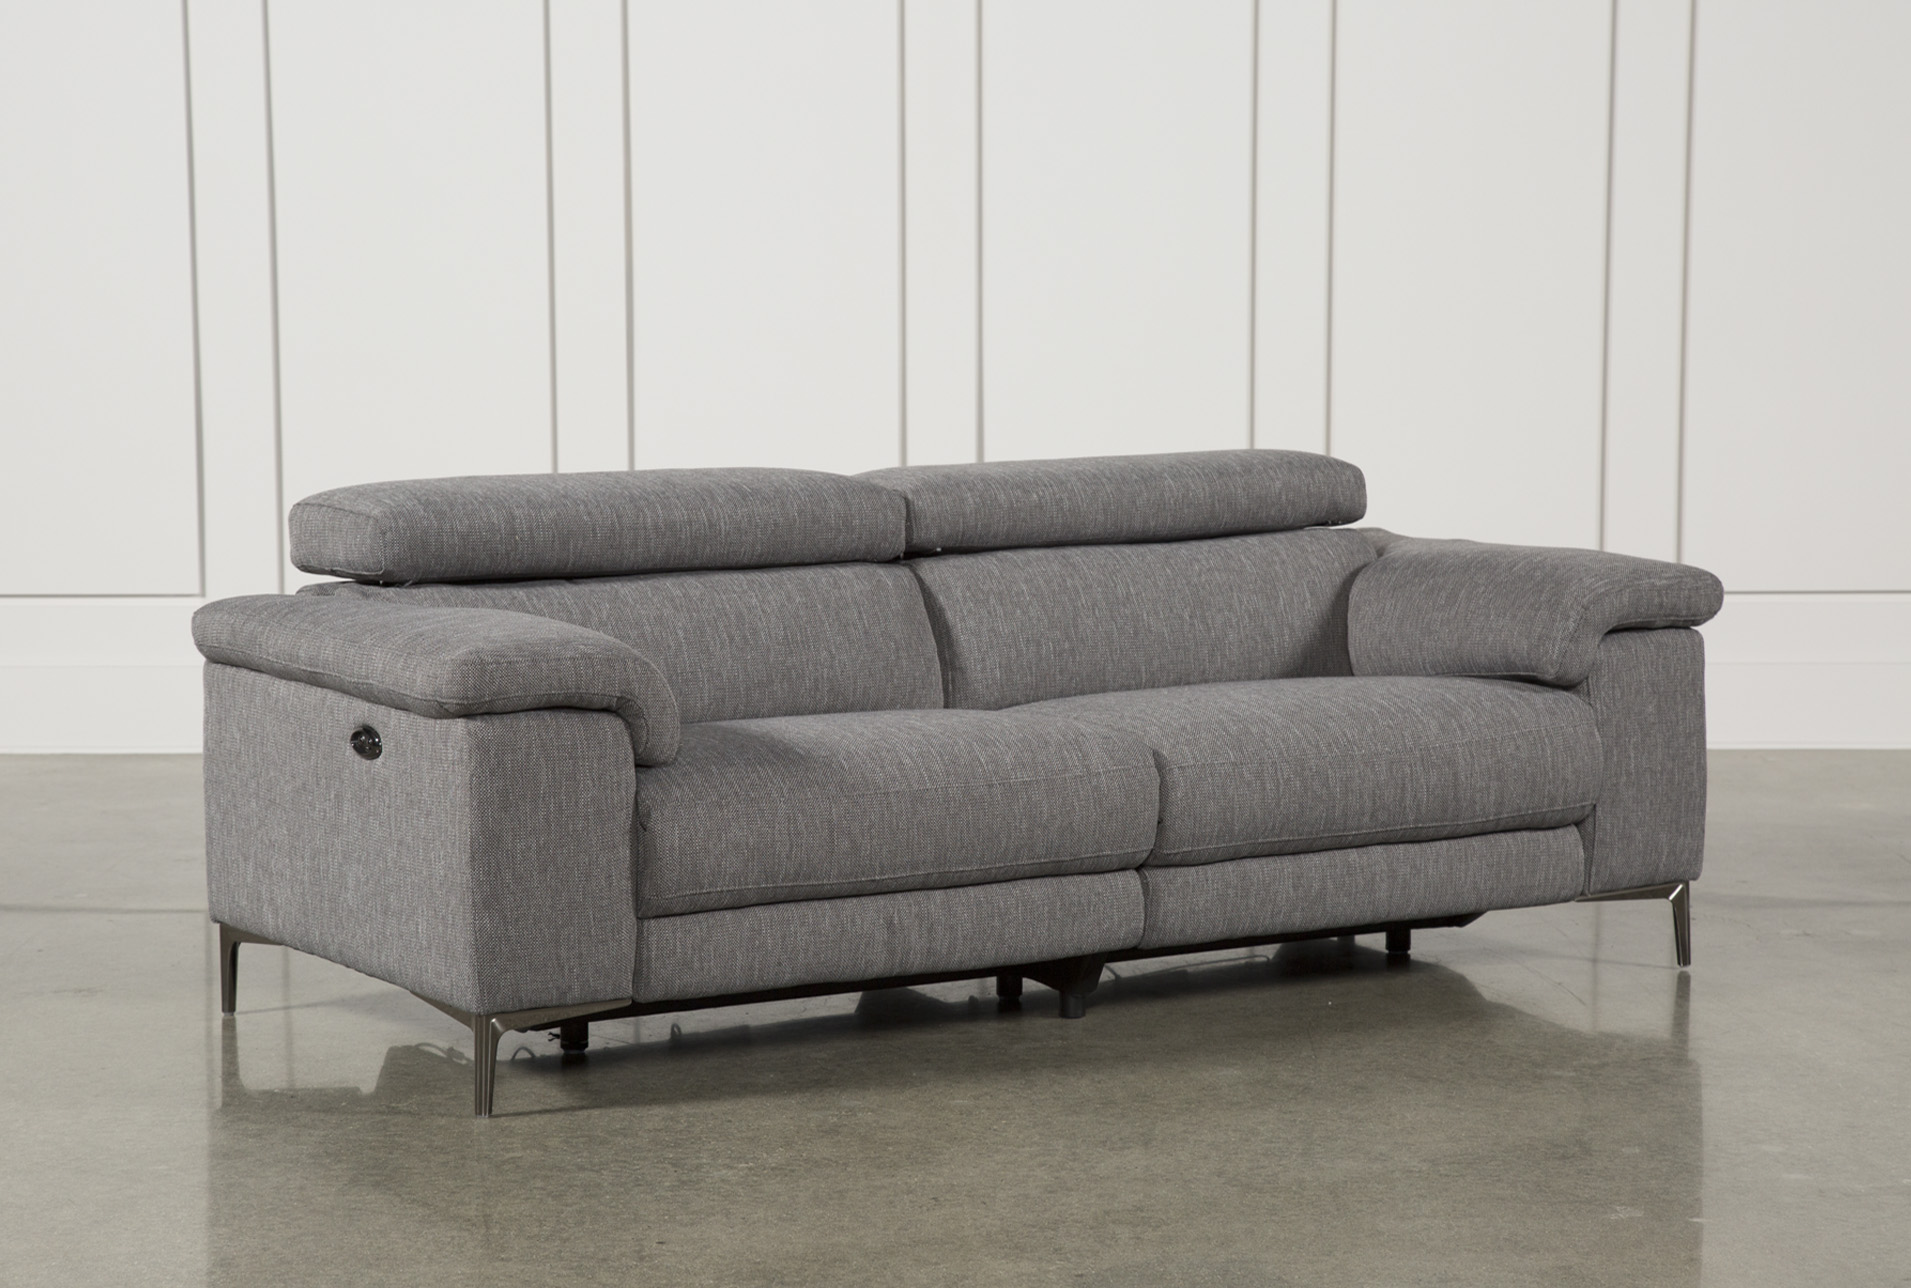 Delicieux Talin Power Reclining Sofa W/Usb (Qty: 1) Has Been Successfully Added To  Your Cart.